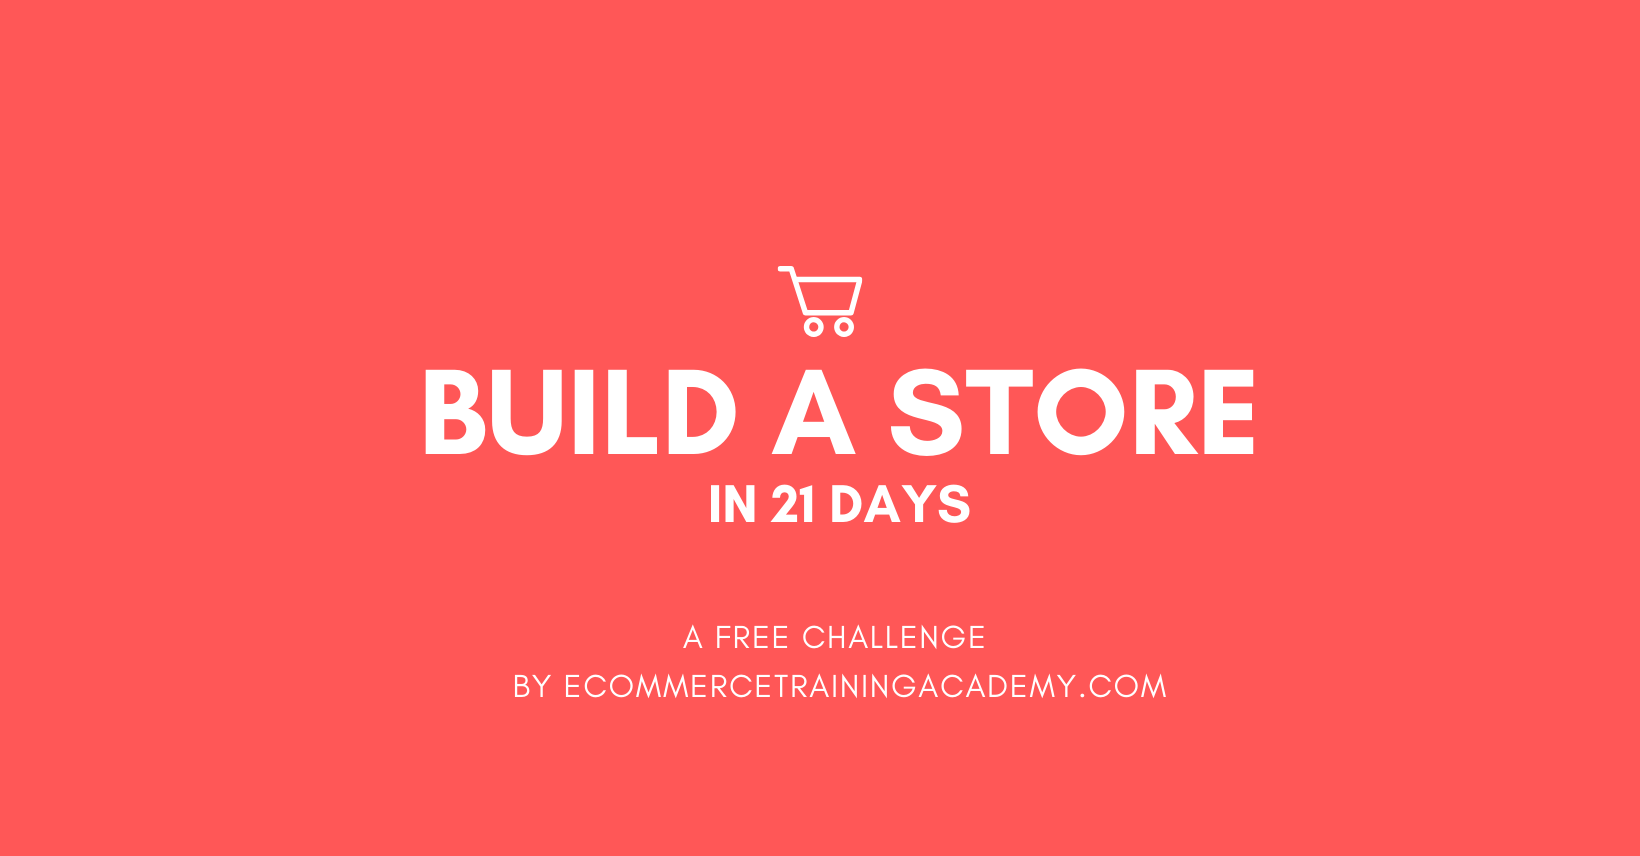 Build a Store Challenge in 21 Days